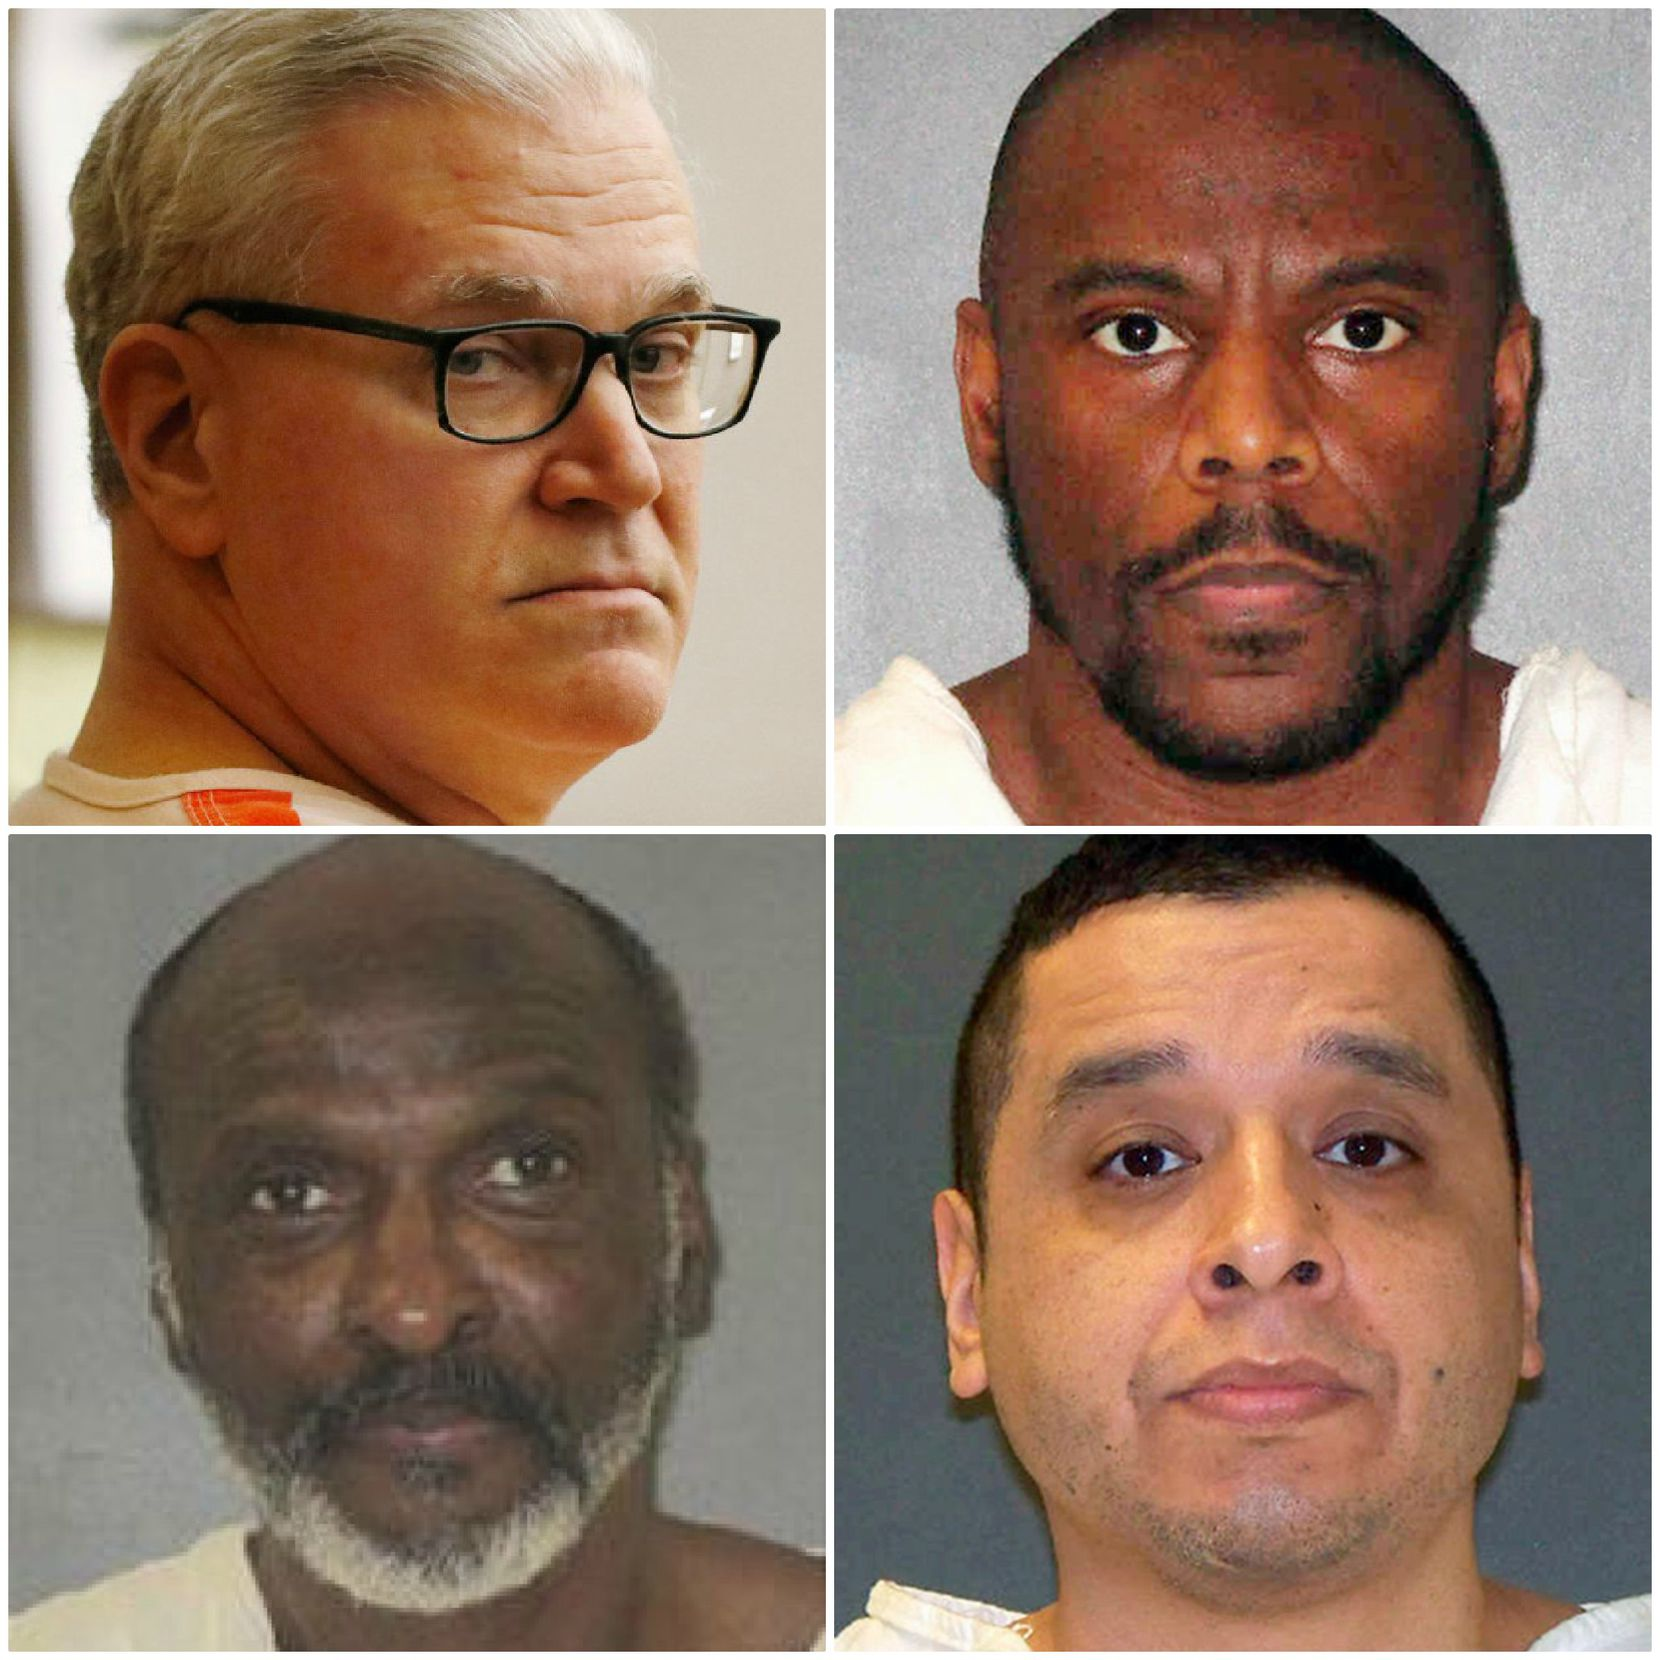 Clockwise from top left: John Battaglia, Alvin Braziel Jr., Joseph Garcia and William Rayford were all executed this year. Each was convicted of capital murder in Dallas County.